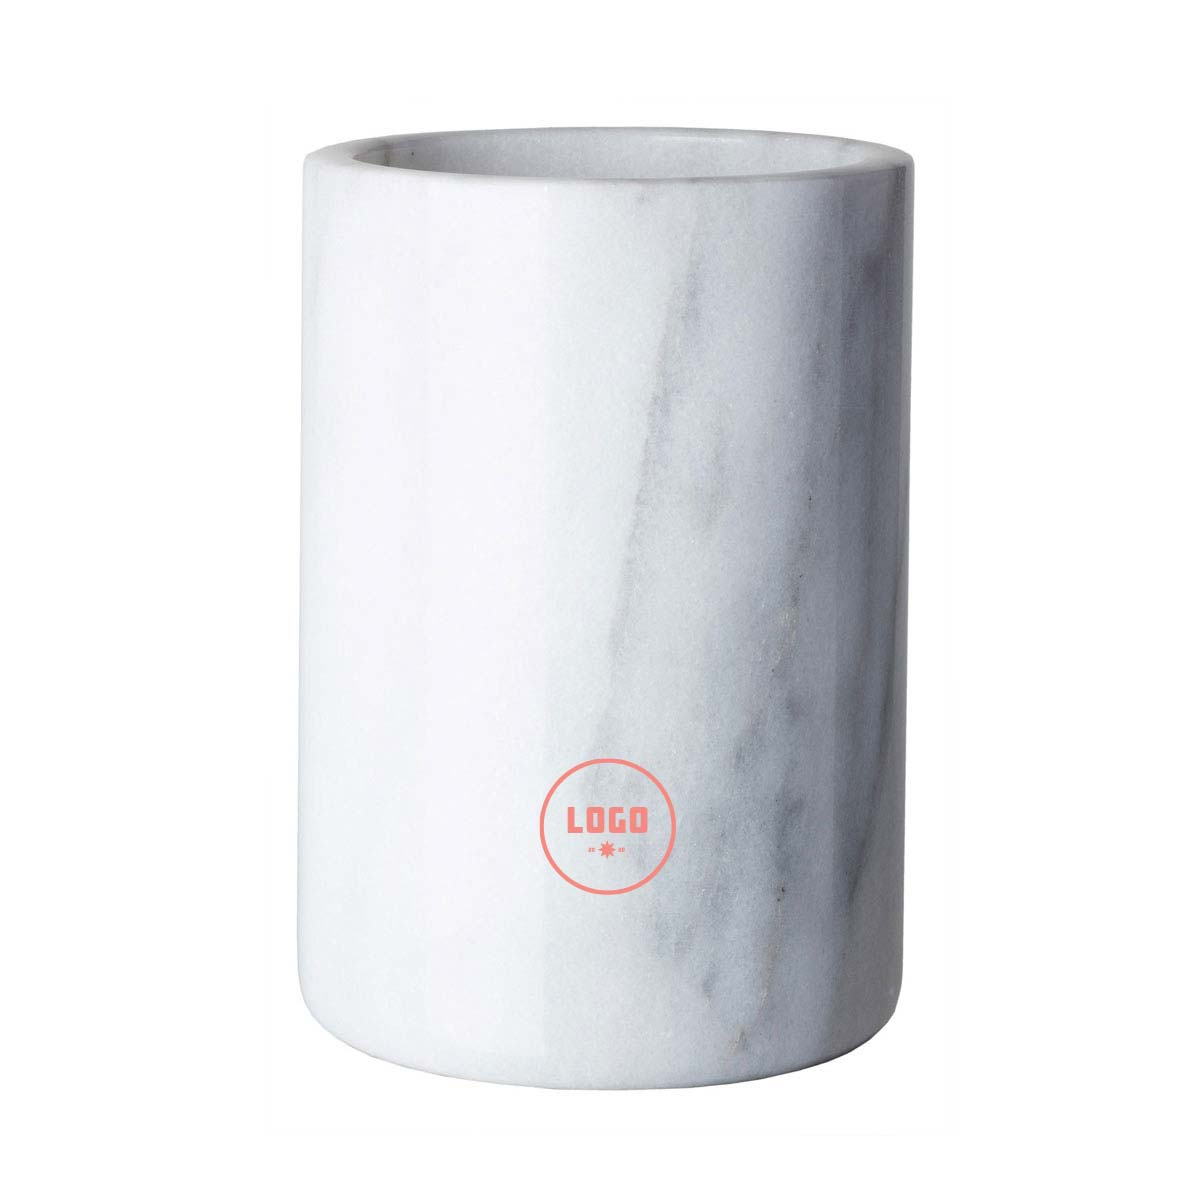 361679 white marble wine cooler one location laser engraved